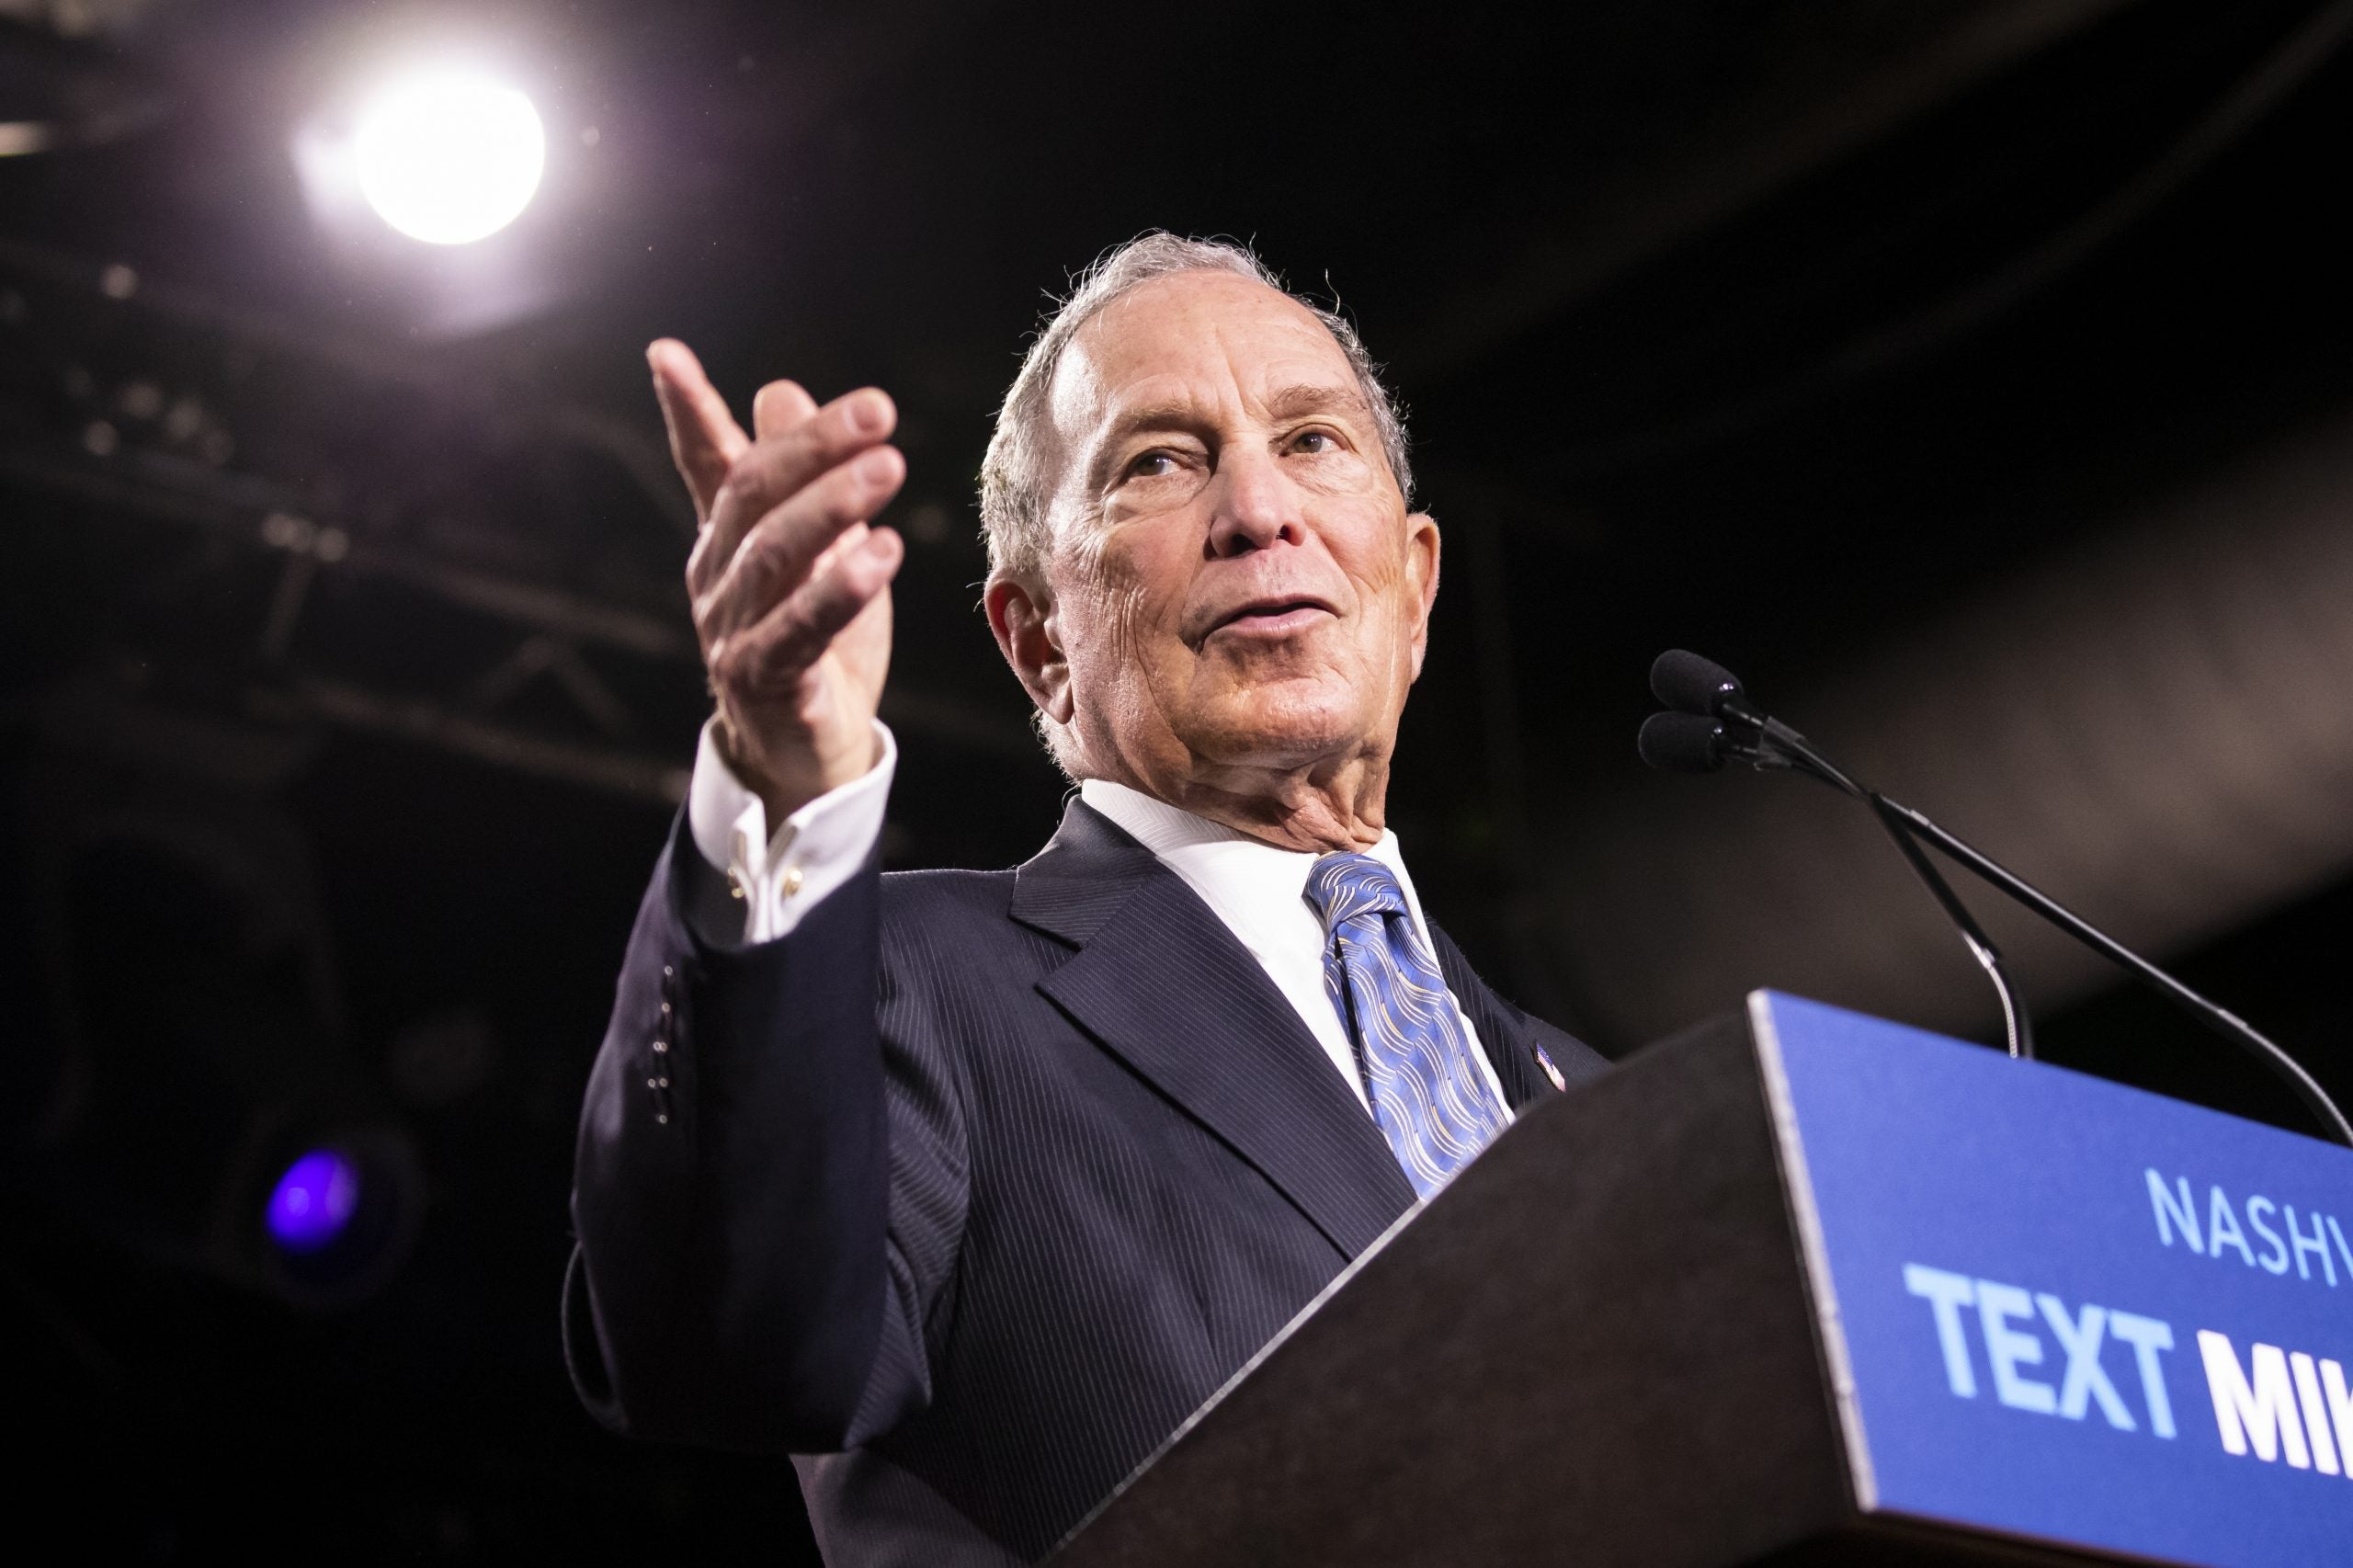 Michael Bloomberg's mega-buck presidential campaign is not the solution to US dysfunction